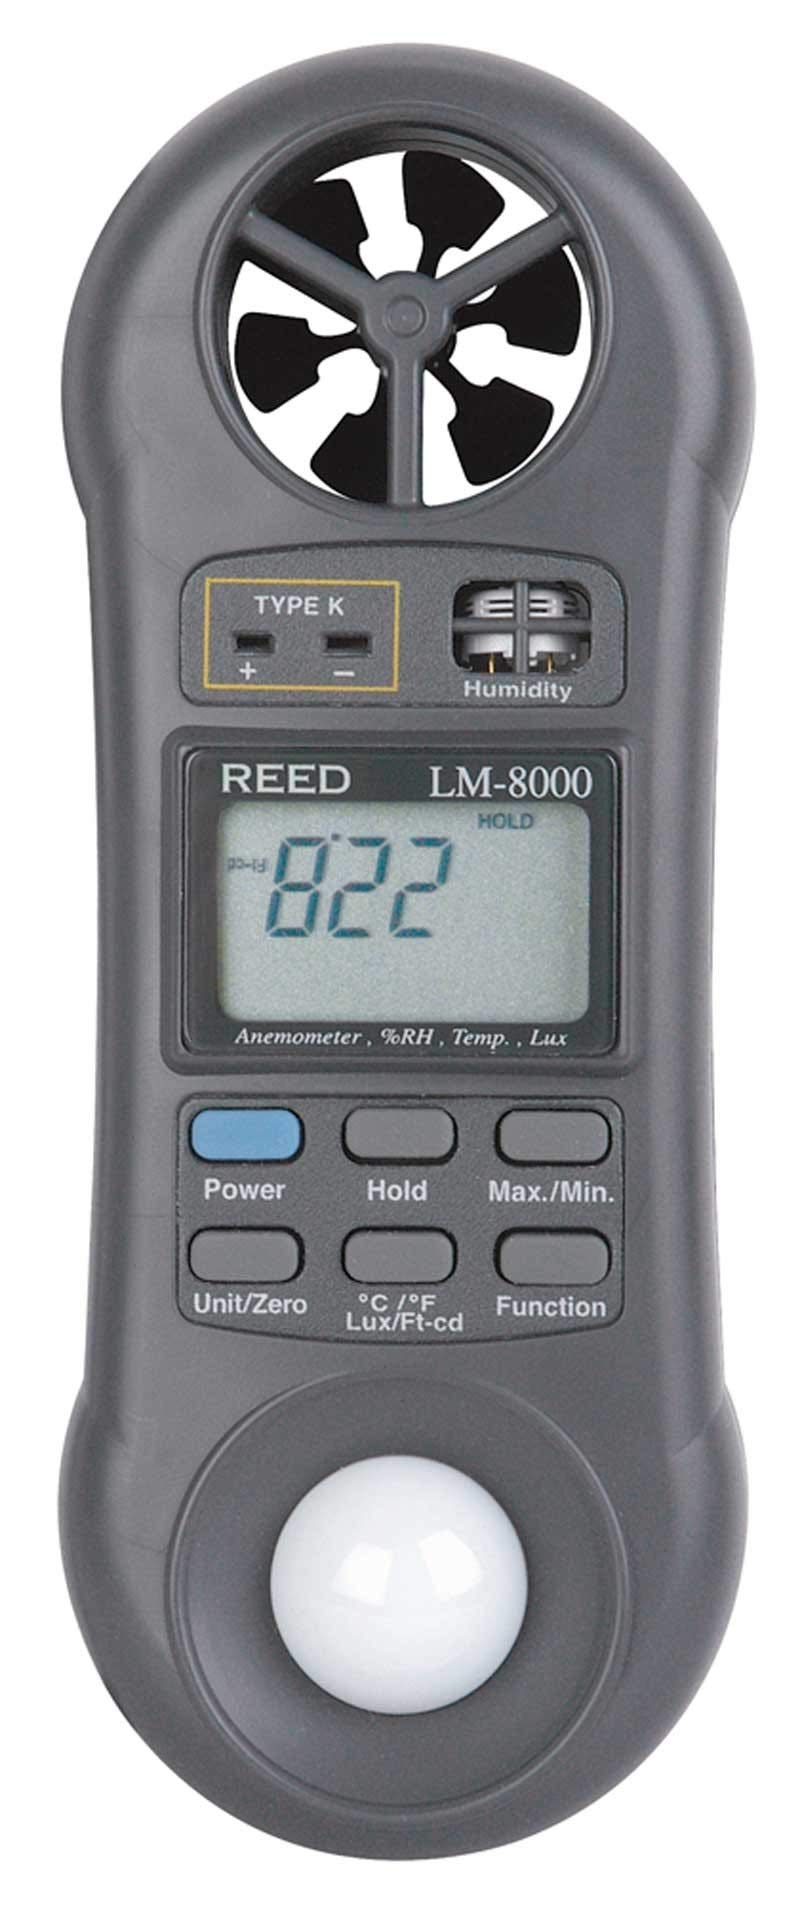 REED Instruments LM-8000 6-in-1 Multi-Function Environmental Meter (Air velocity/temperature, Ambient Temperature, Humidity, Contact Temperature and Light) by REED Instruments